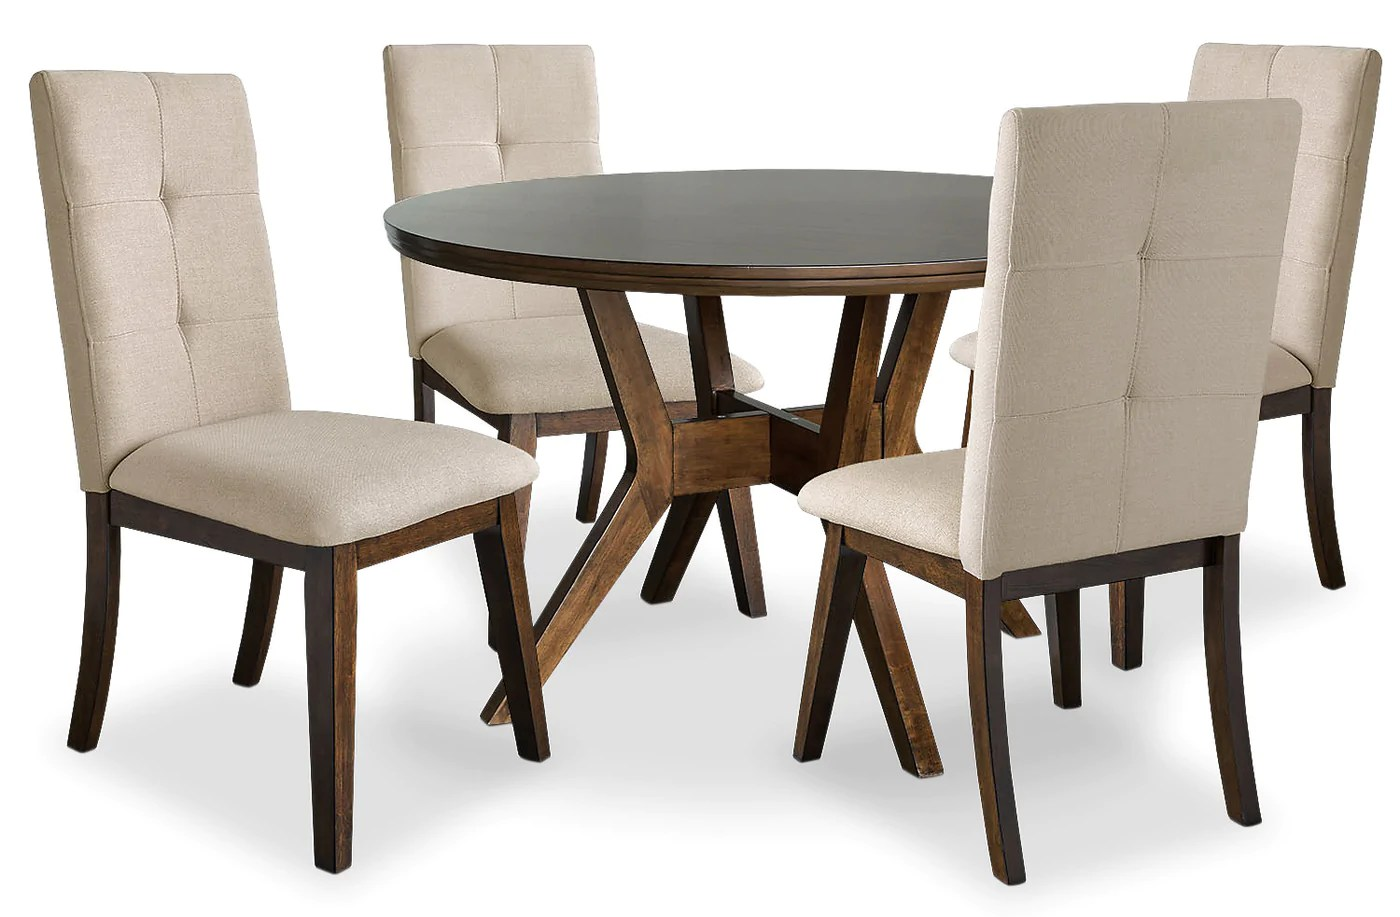 Chelsea 5 Piece Round Dining Table Package With Beige Chairs The Brick